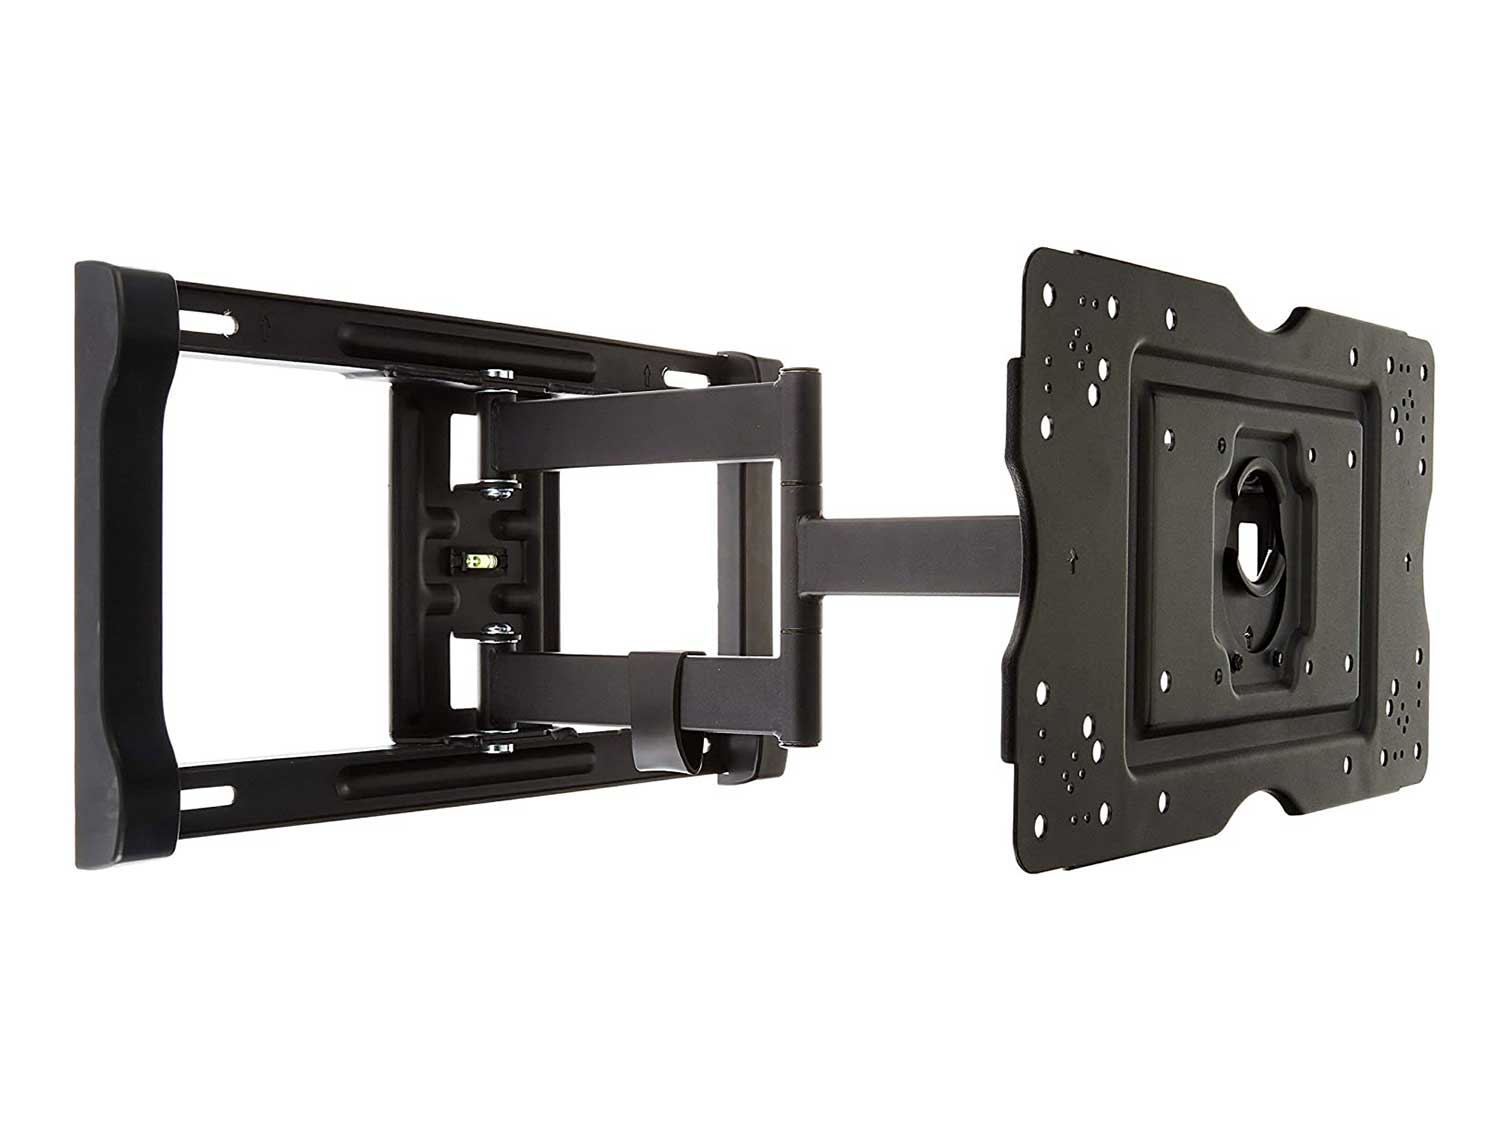 Amazon Basics Heavy-Duty, Full Motion Articulating TV Wall Mount for 32-inch to 80-inch LED, LCD, Flat Screen TVs